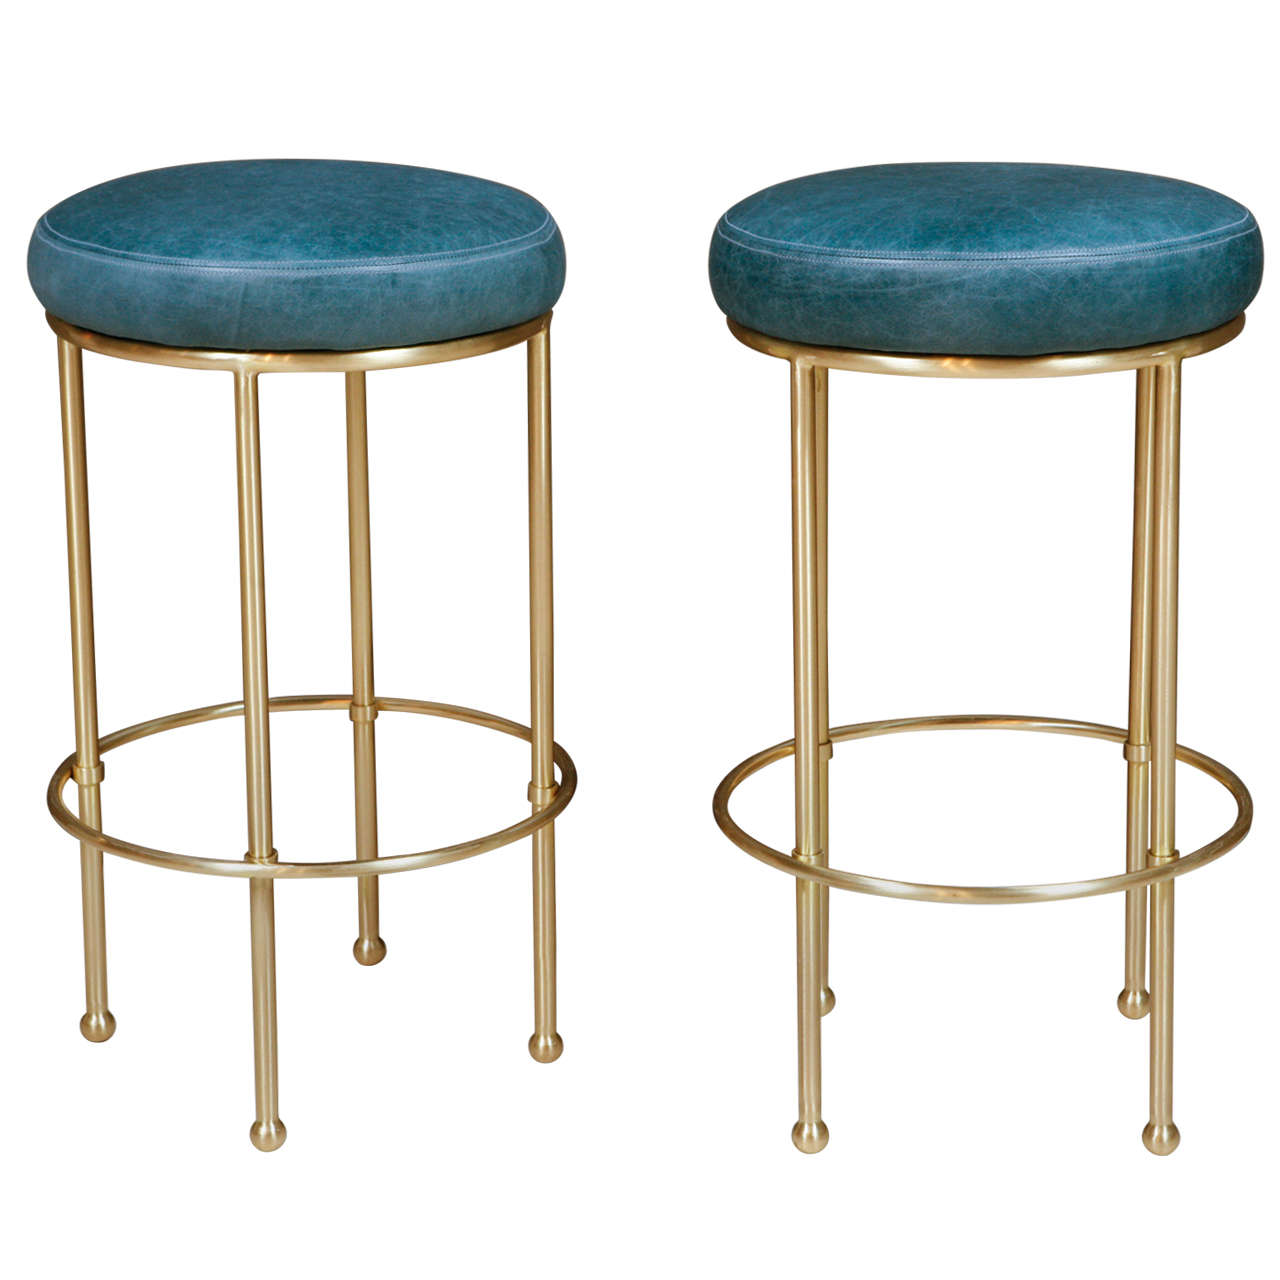 Antique Bar Stools ~ Brass bar stool at stdibs